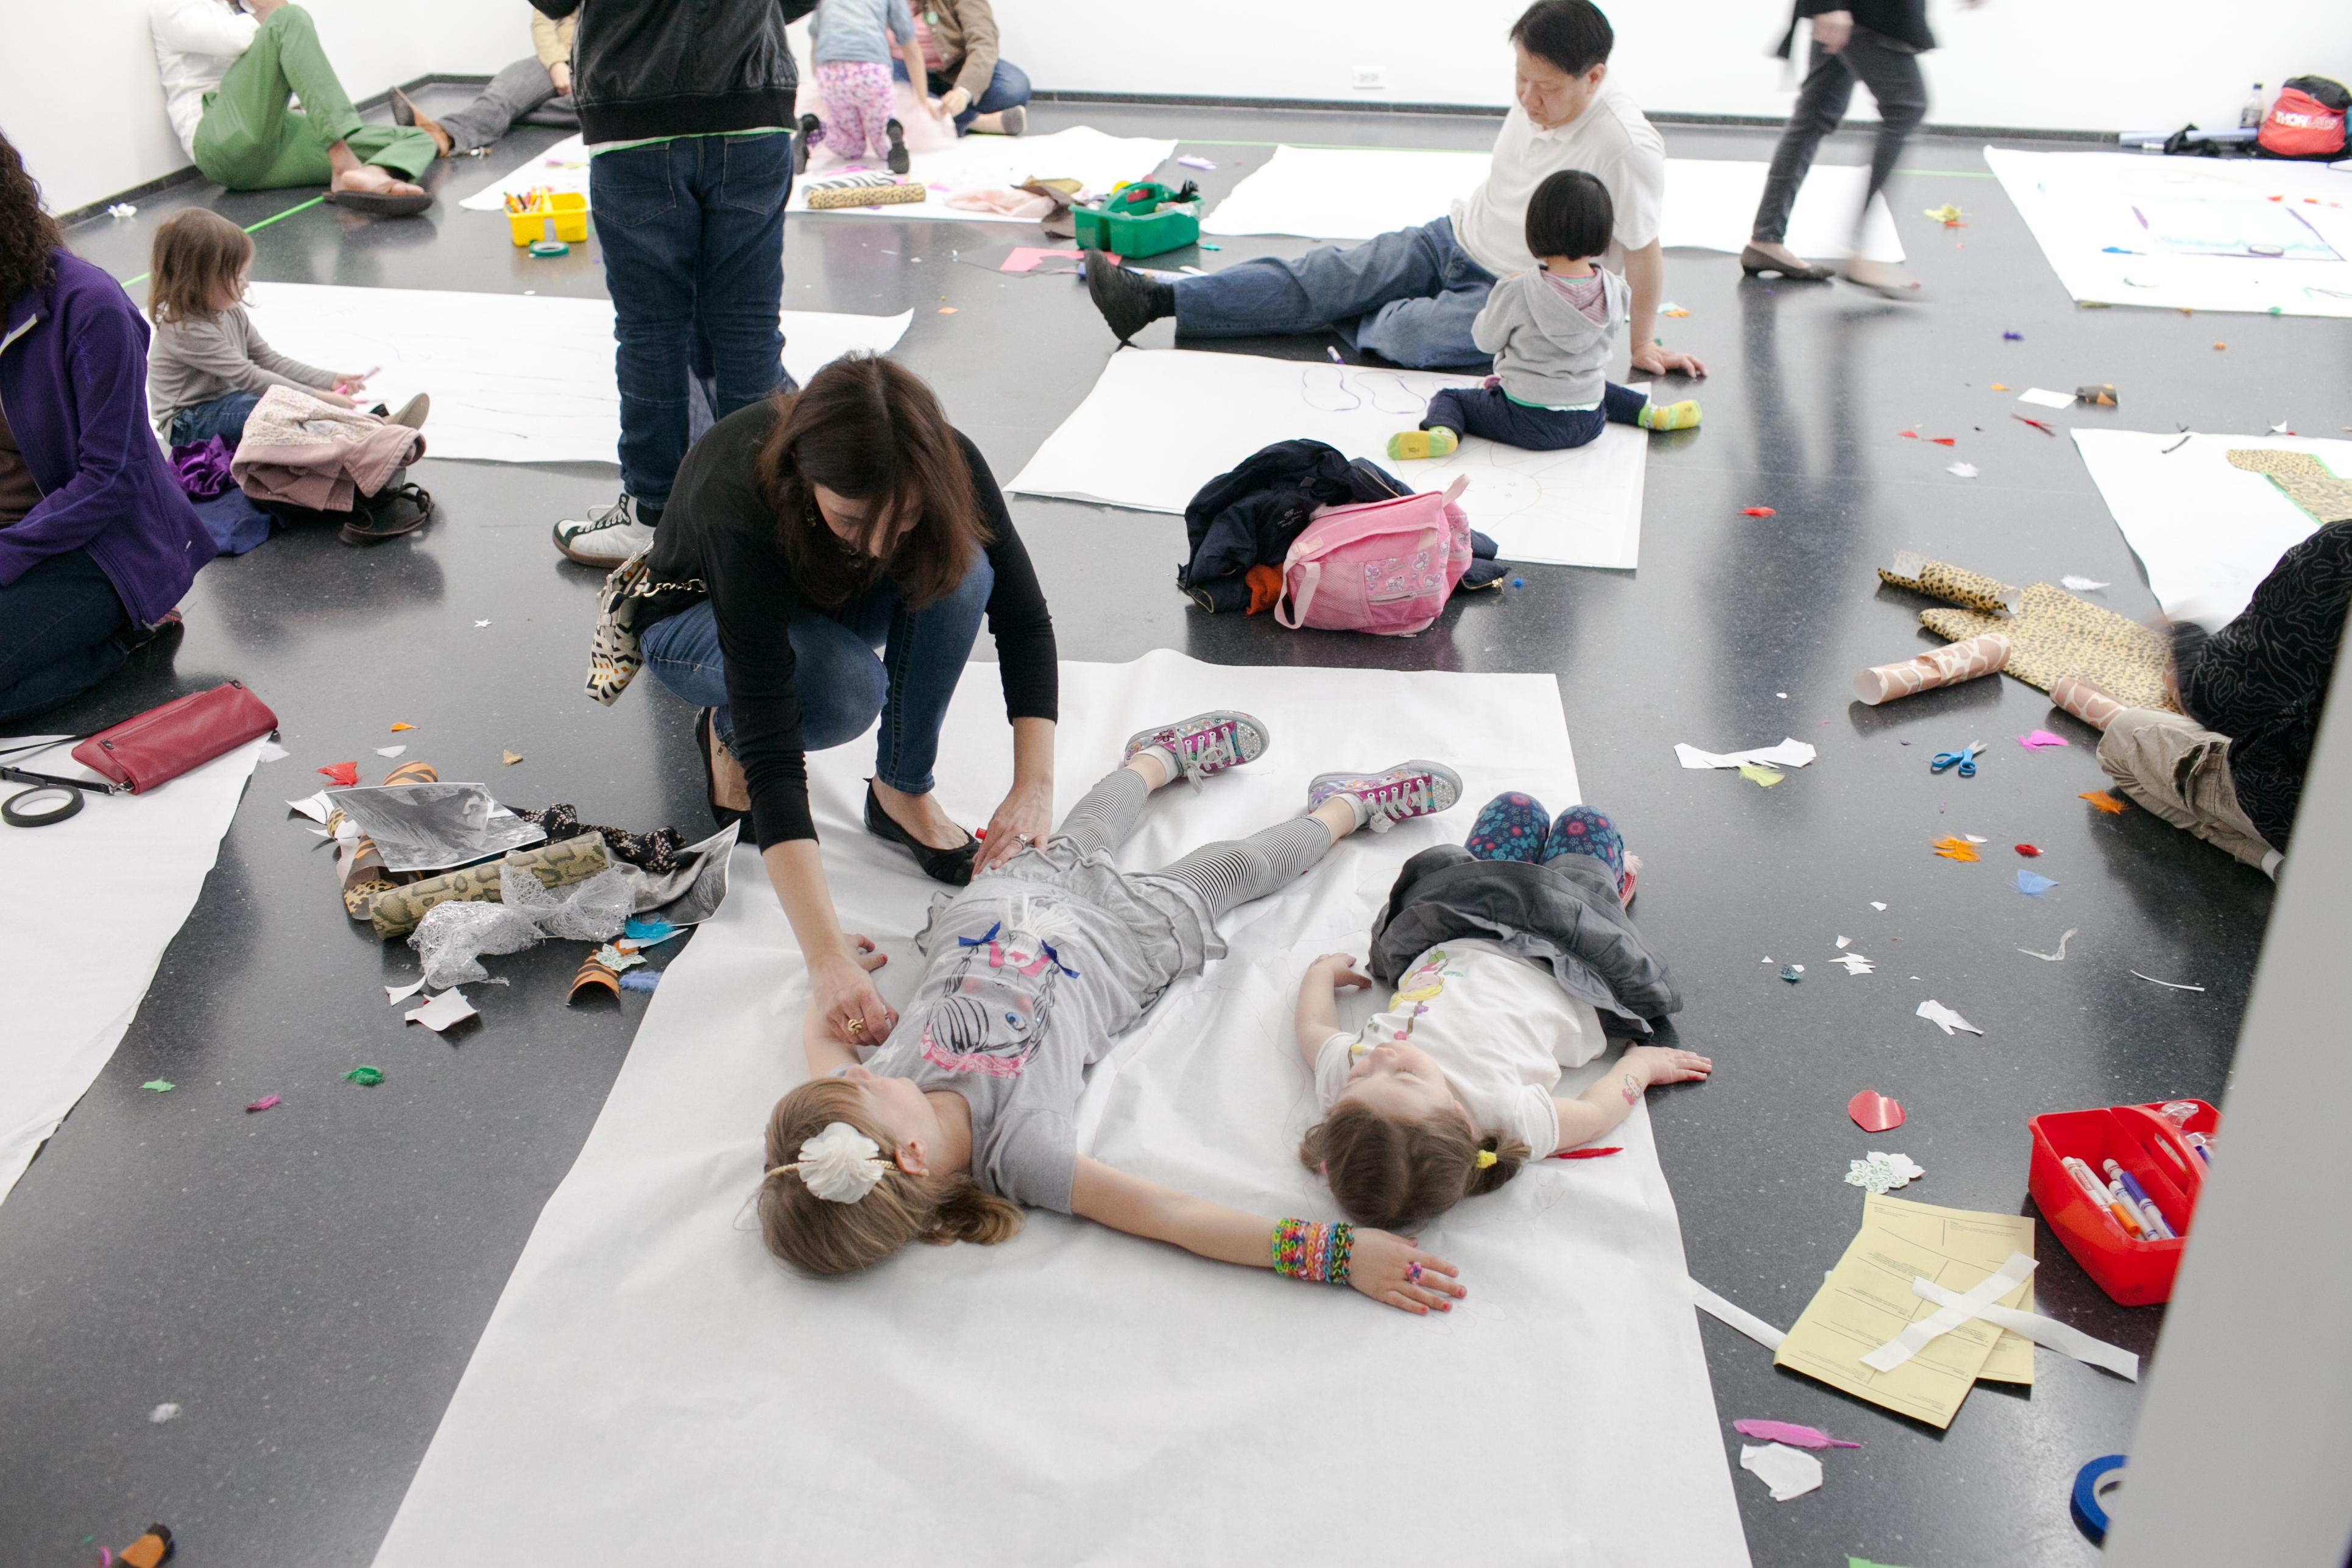 Parents and children interacting together in a white-walled gallery, with children lying down on large sheets of white craft paper while their parents trace the outline of their bodies.